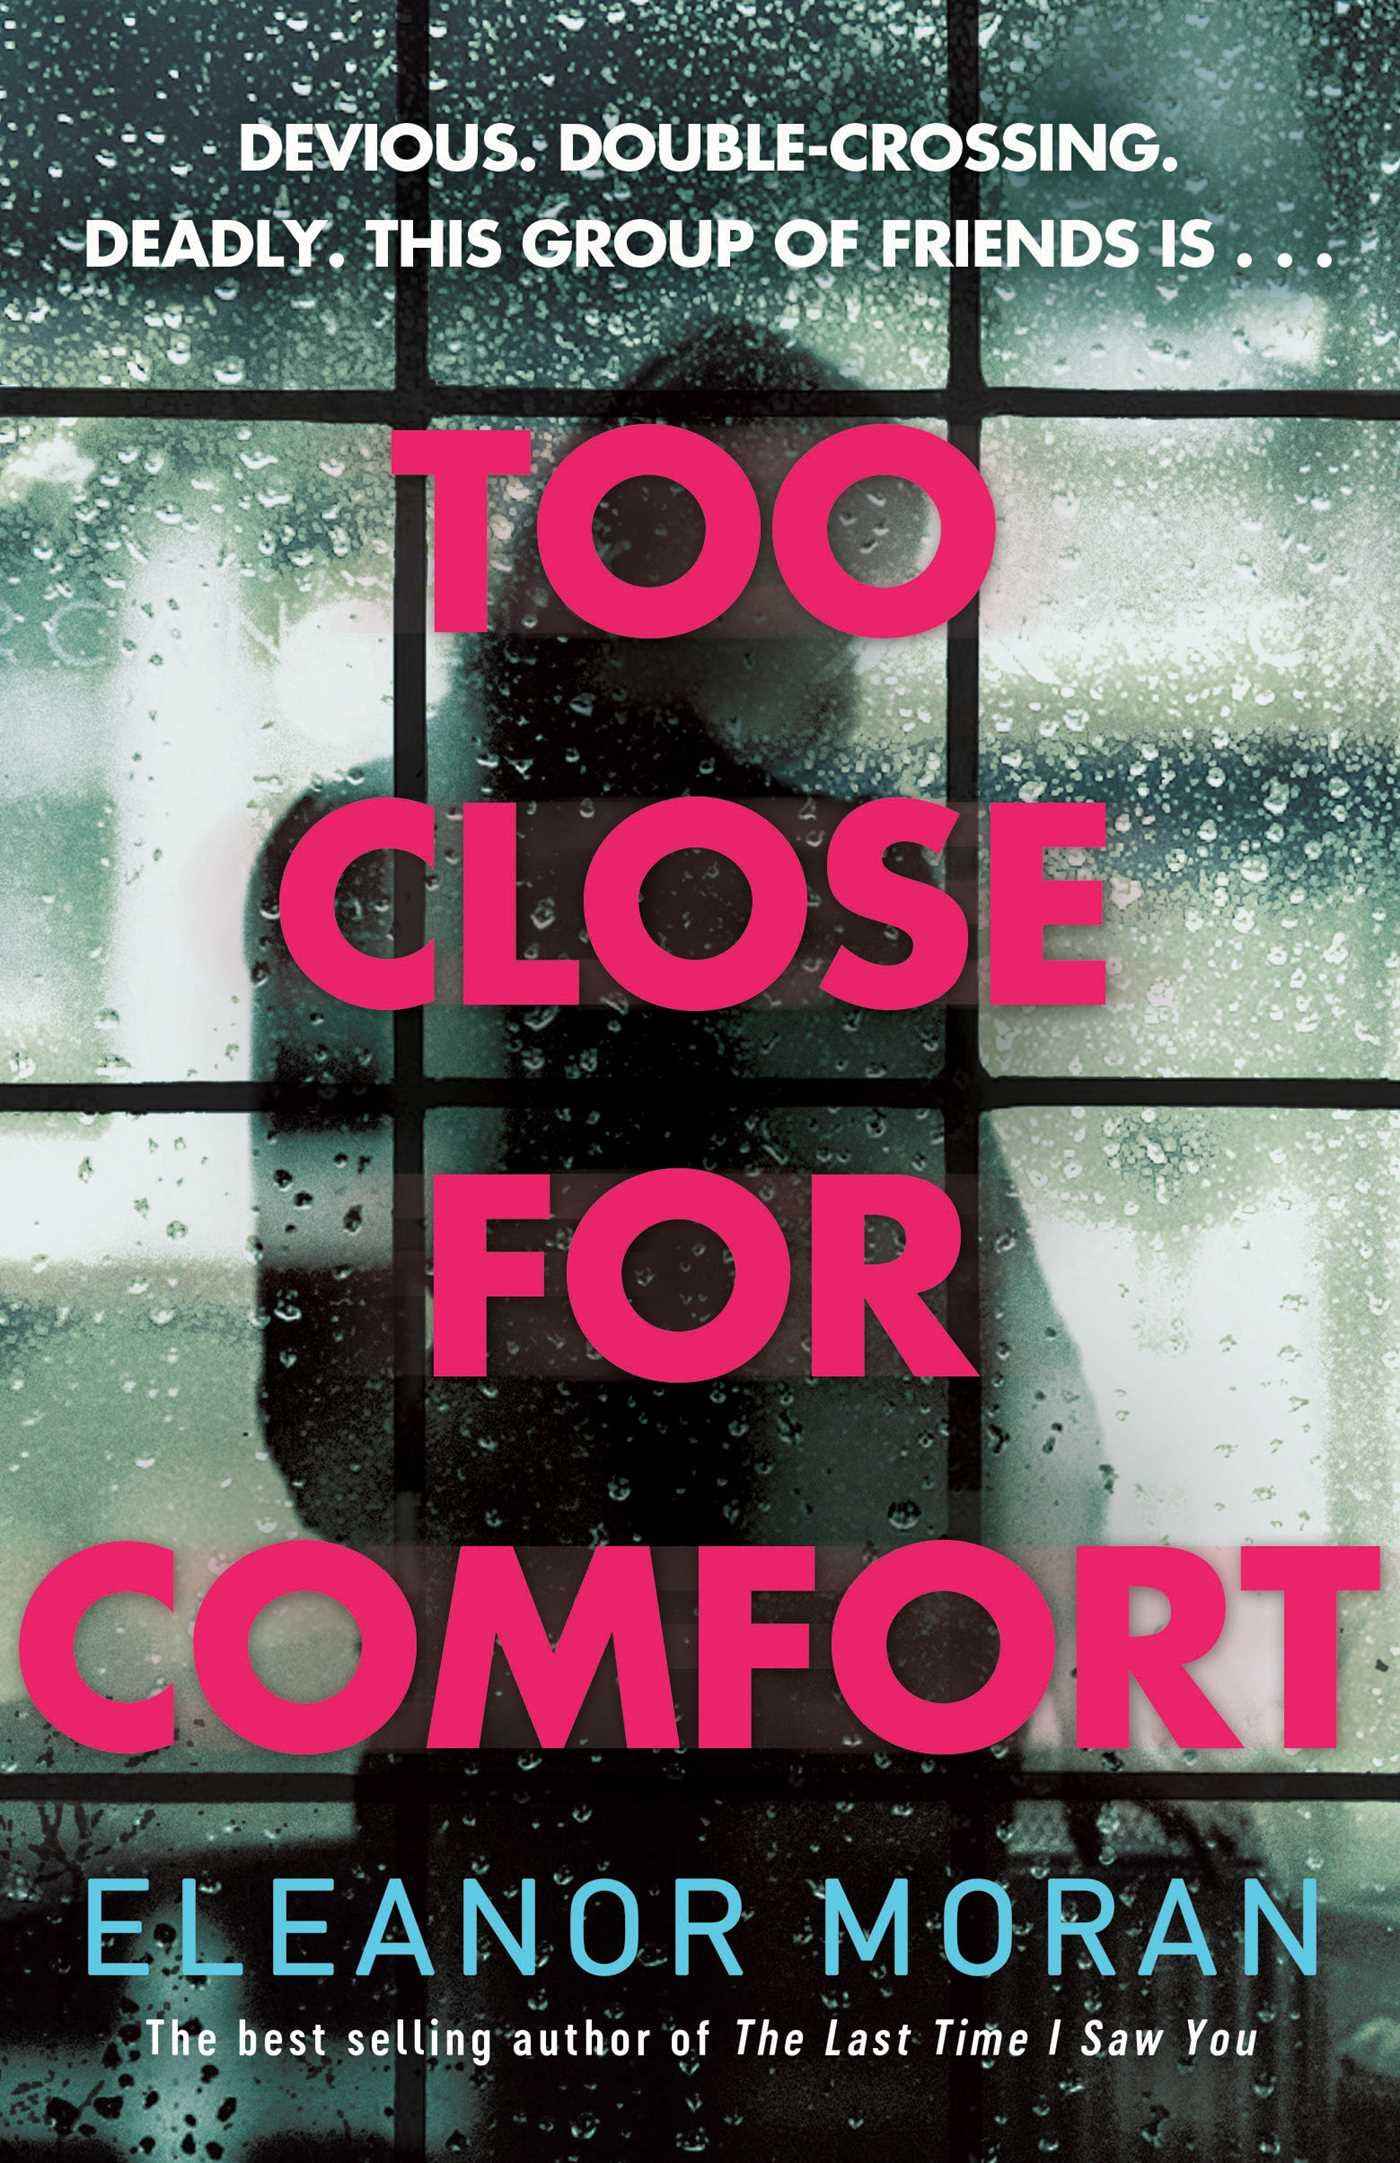 Too Close for Comfort by Eleanor Moran, published by Simon and Schuster